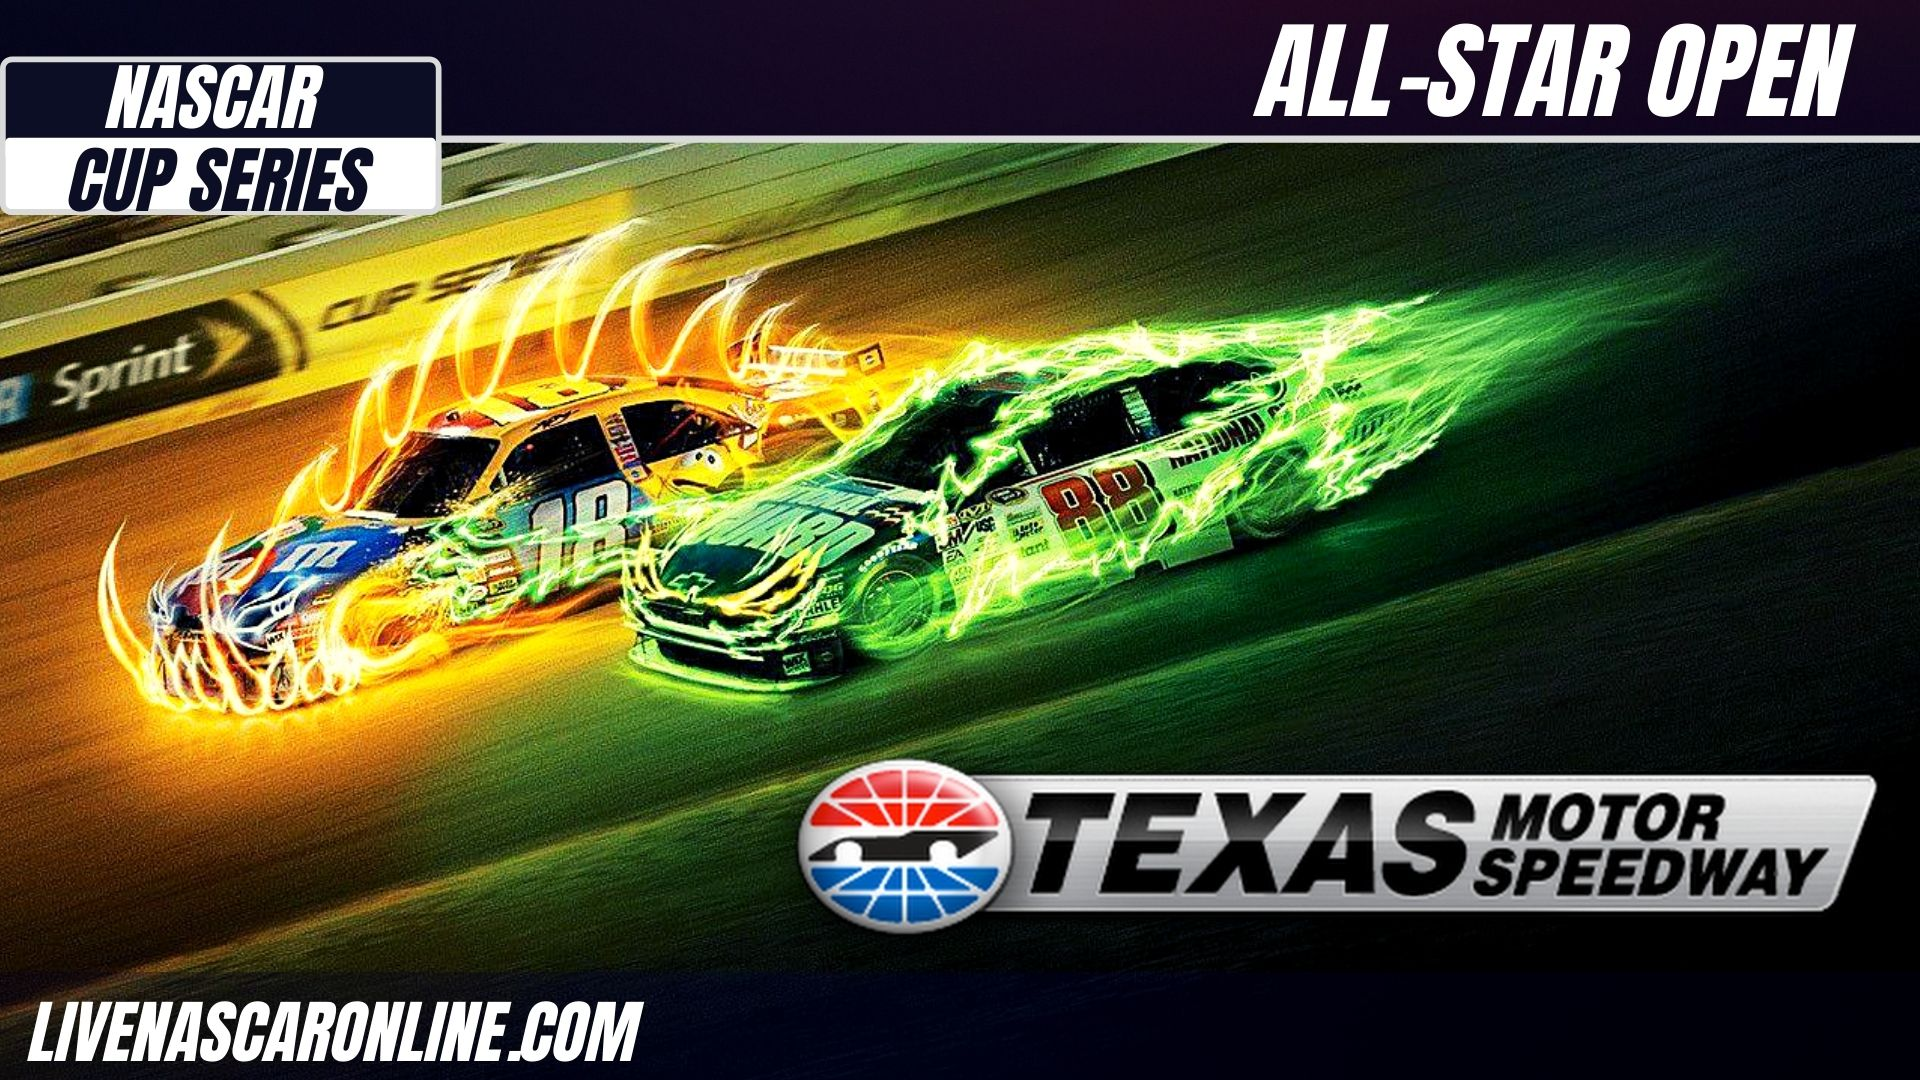 NASCAR All-Star Open Live Stream 2021